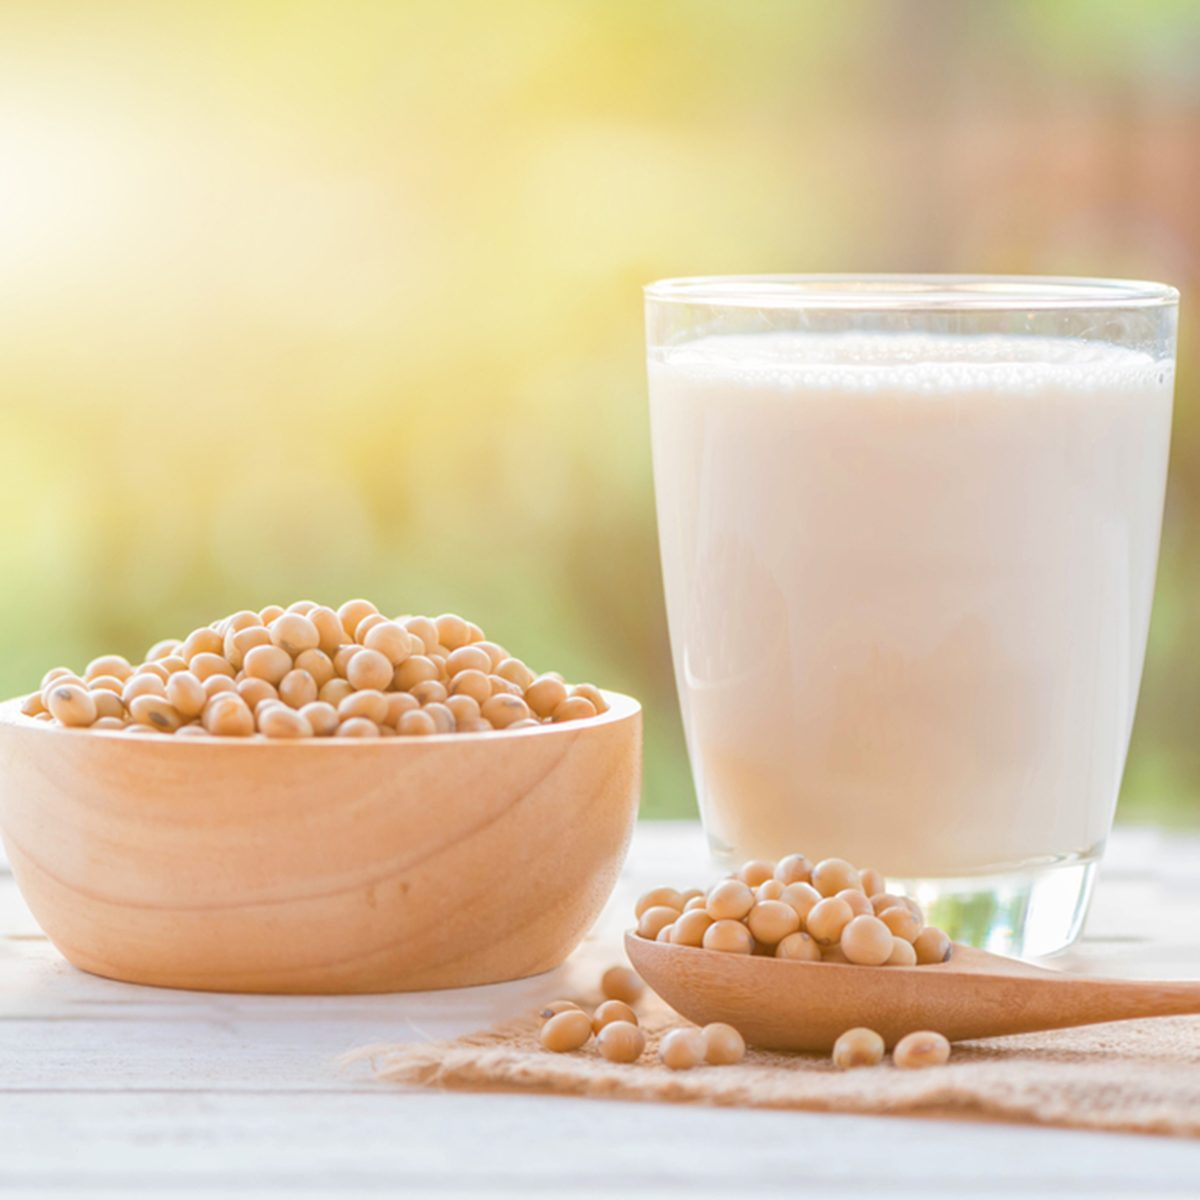 Soy milk in glass and soy bean on spoon it on white table background with lighting in the morning